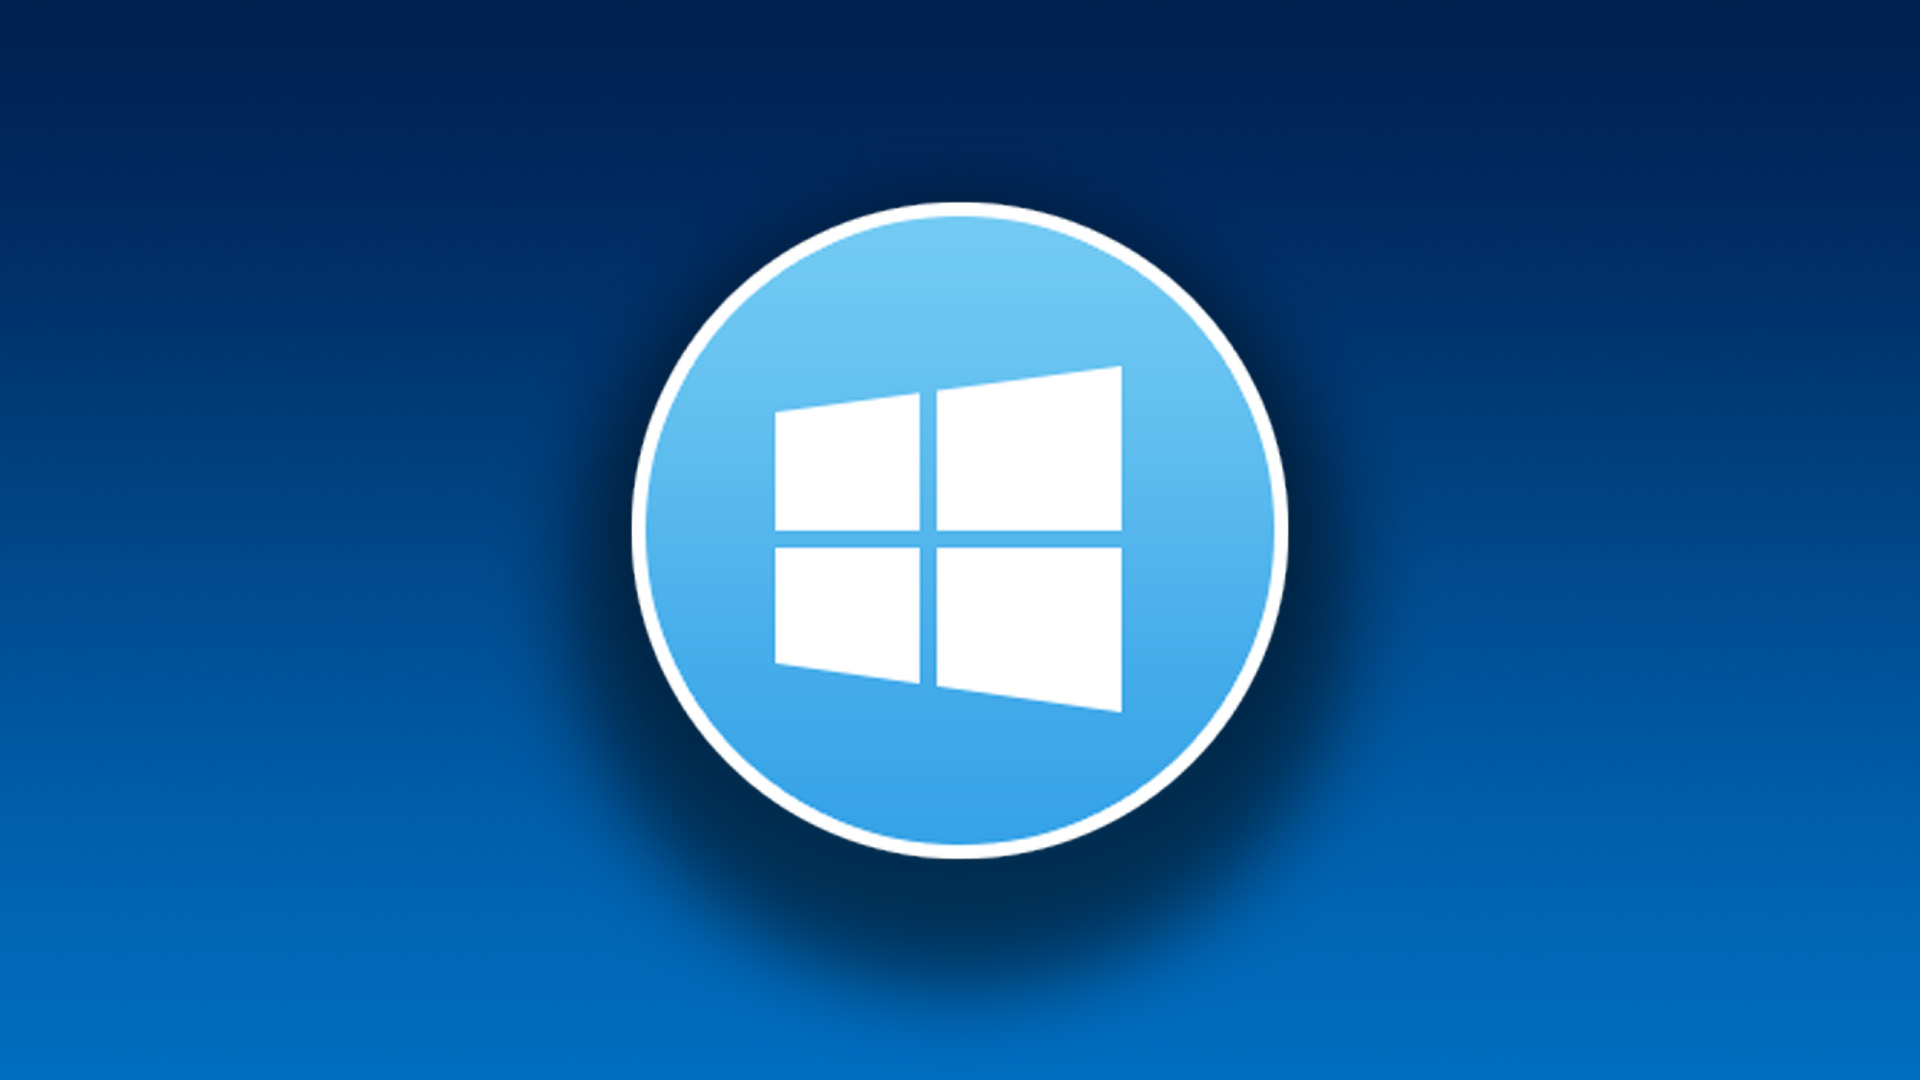 windows-10-drop-shadow